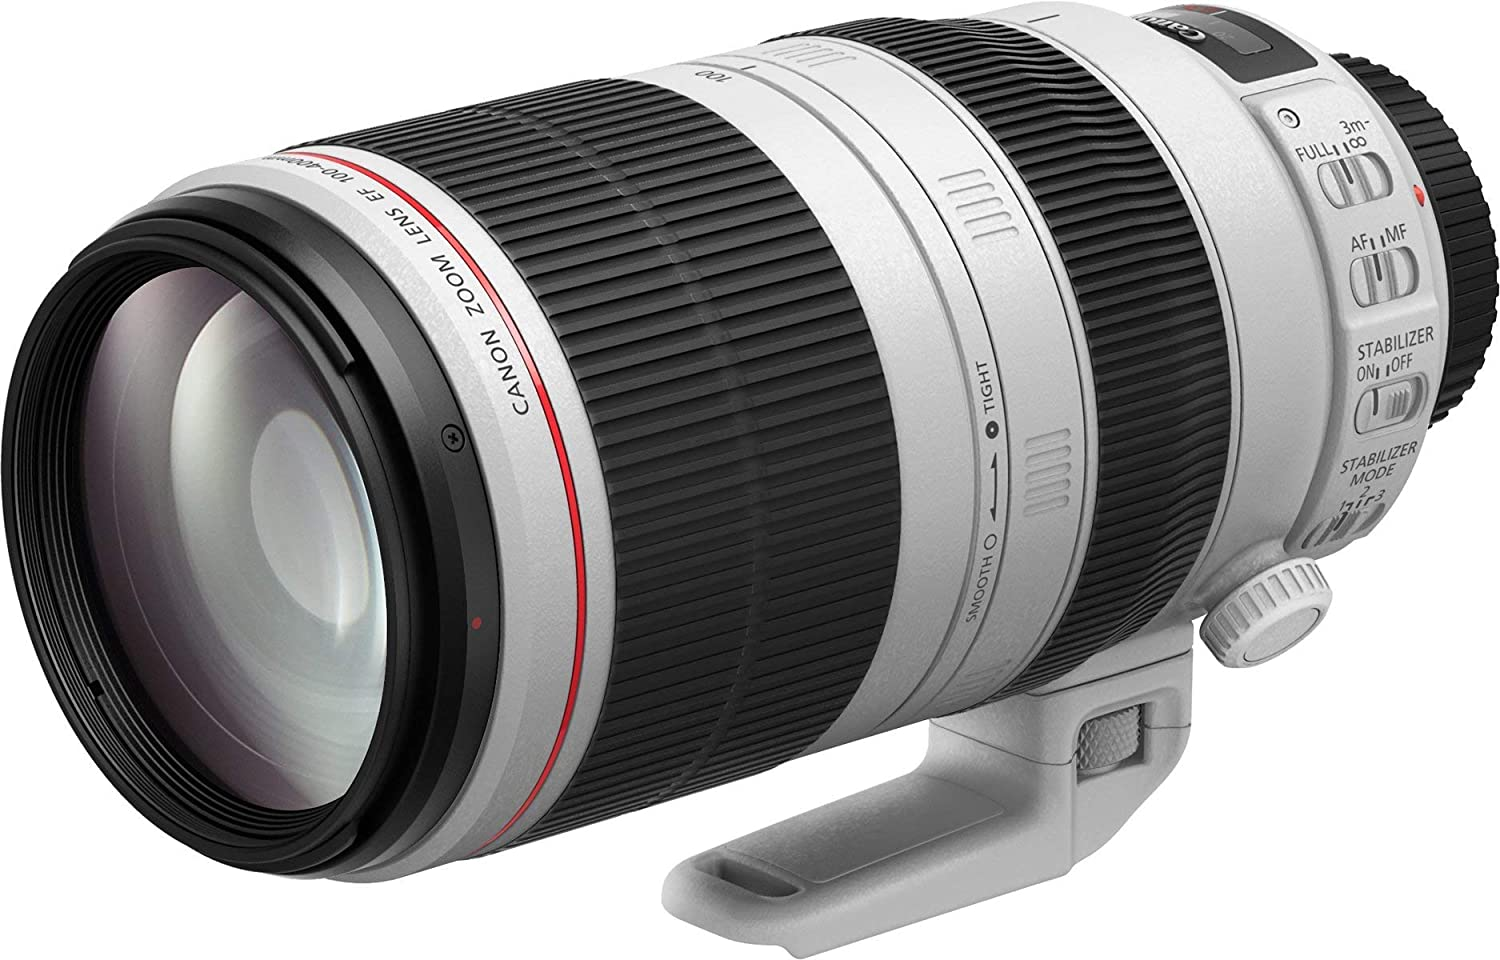 Canon EF 100-400mm 4.5-5.6 L IS USM II Lens Mark 2 New Main PCB Parts